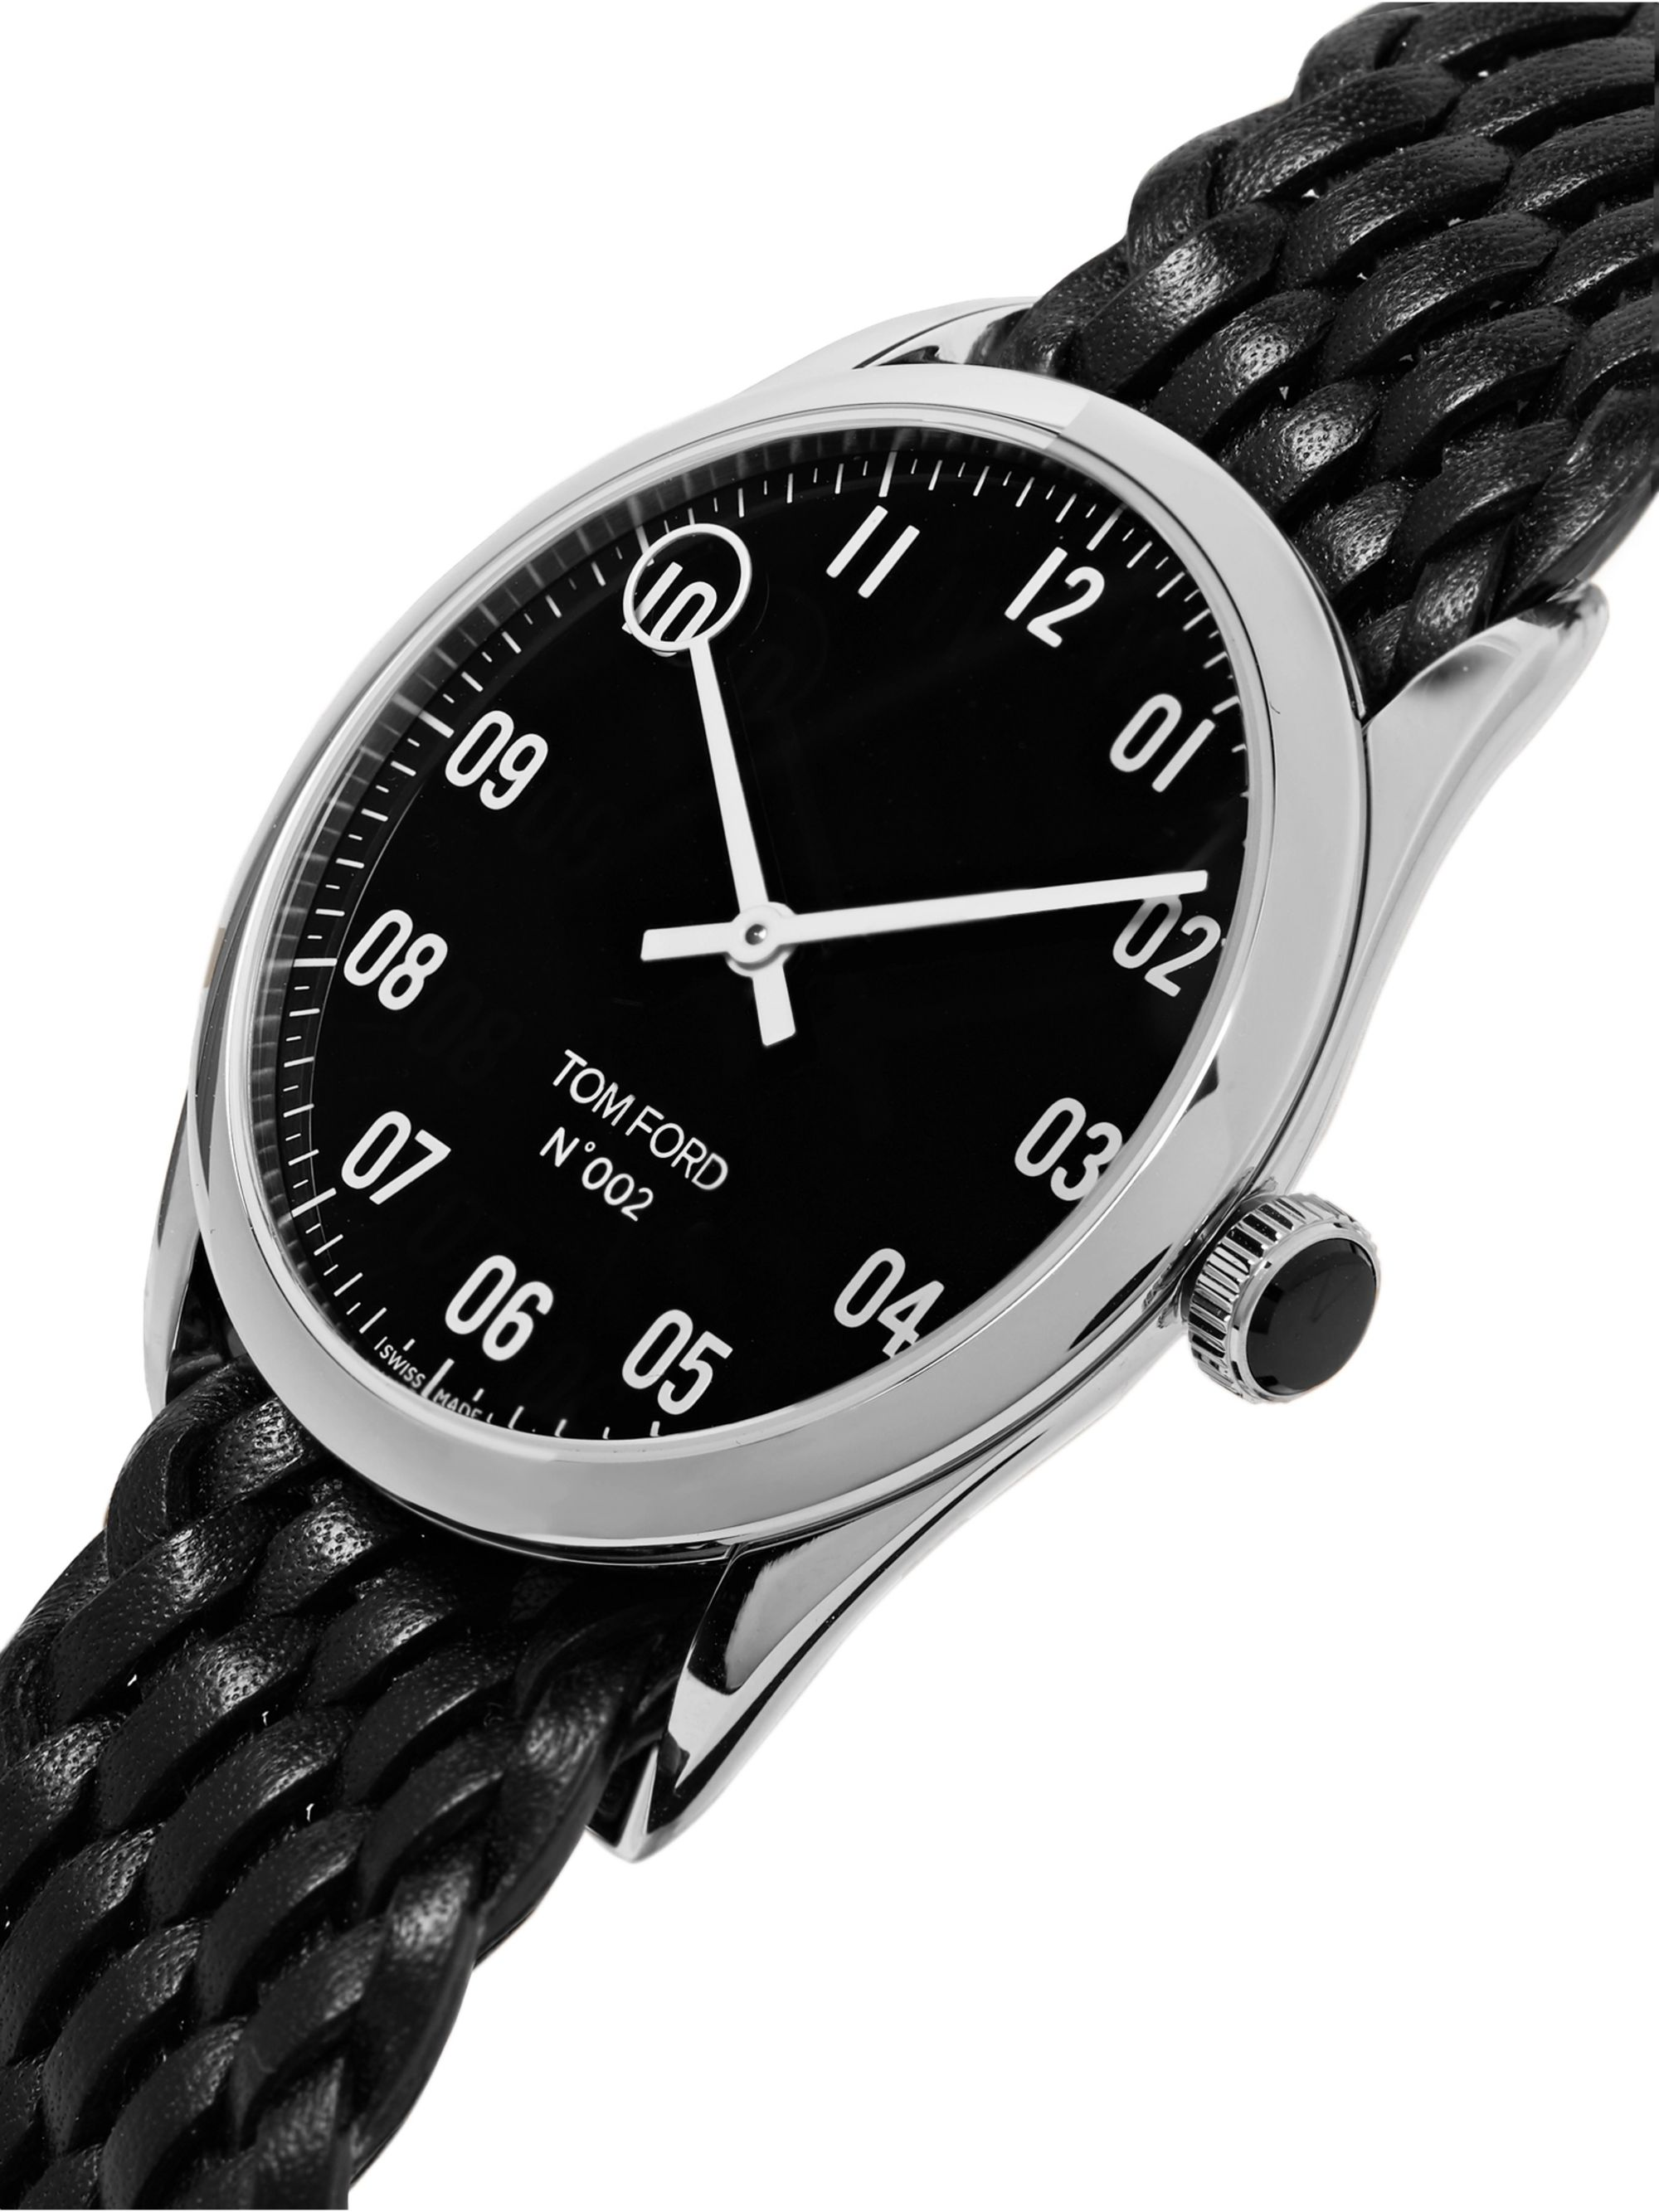 002 38mm Stainless Steel and Braided Leather Watch